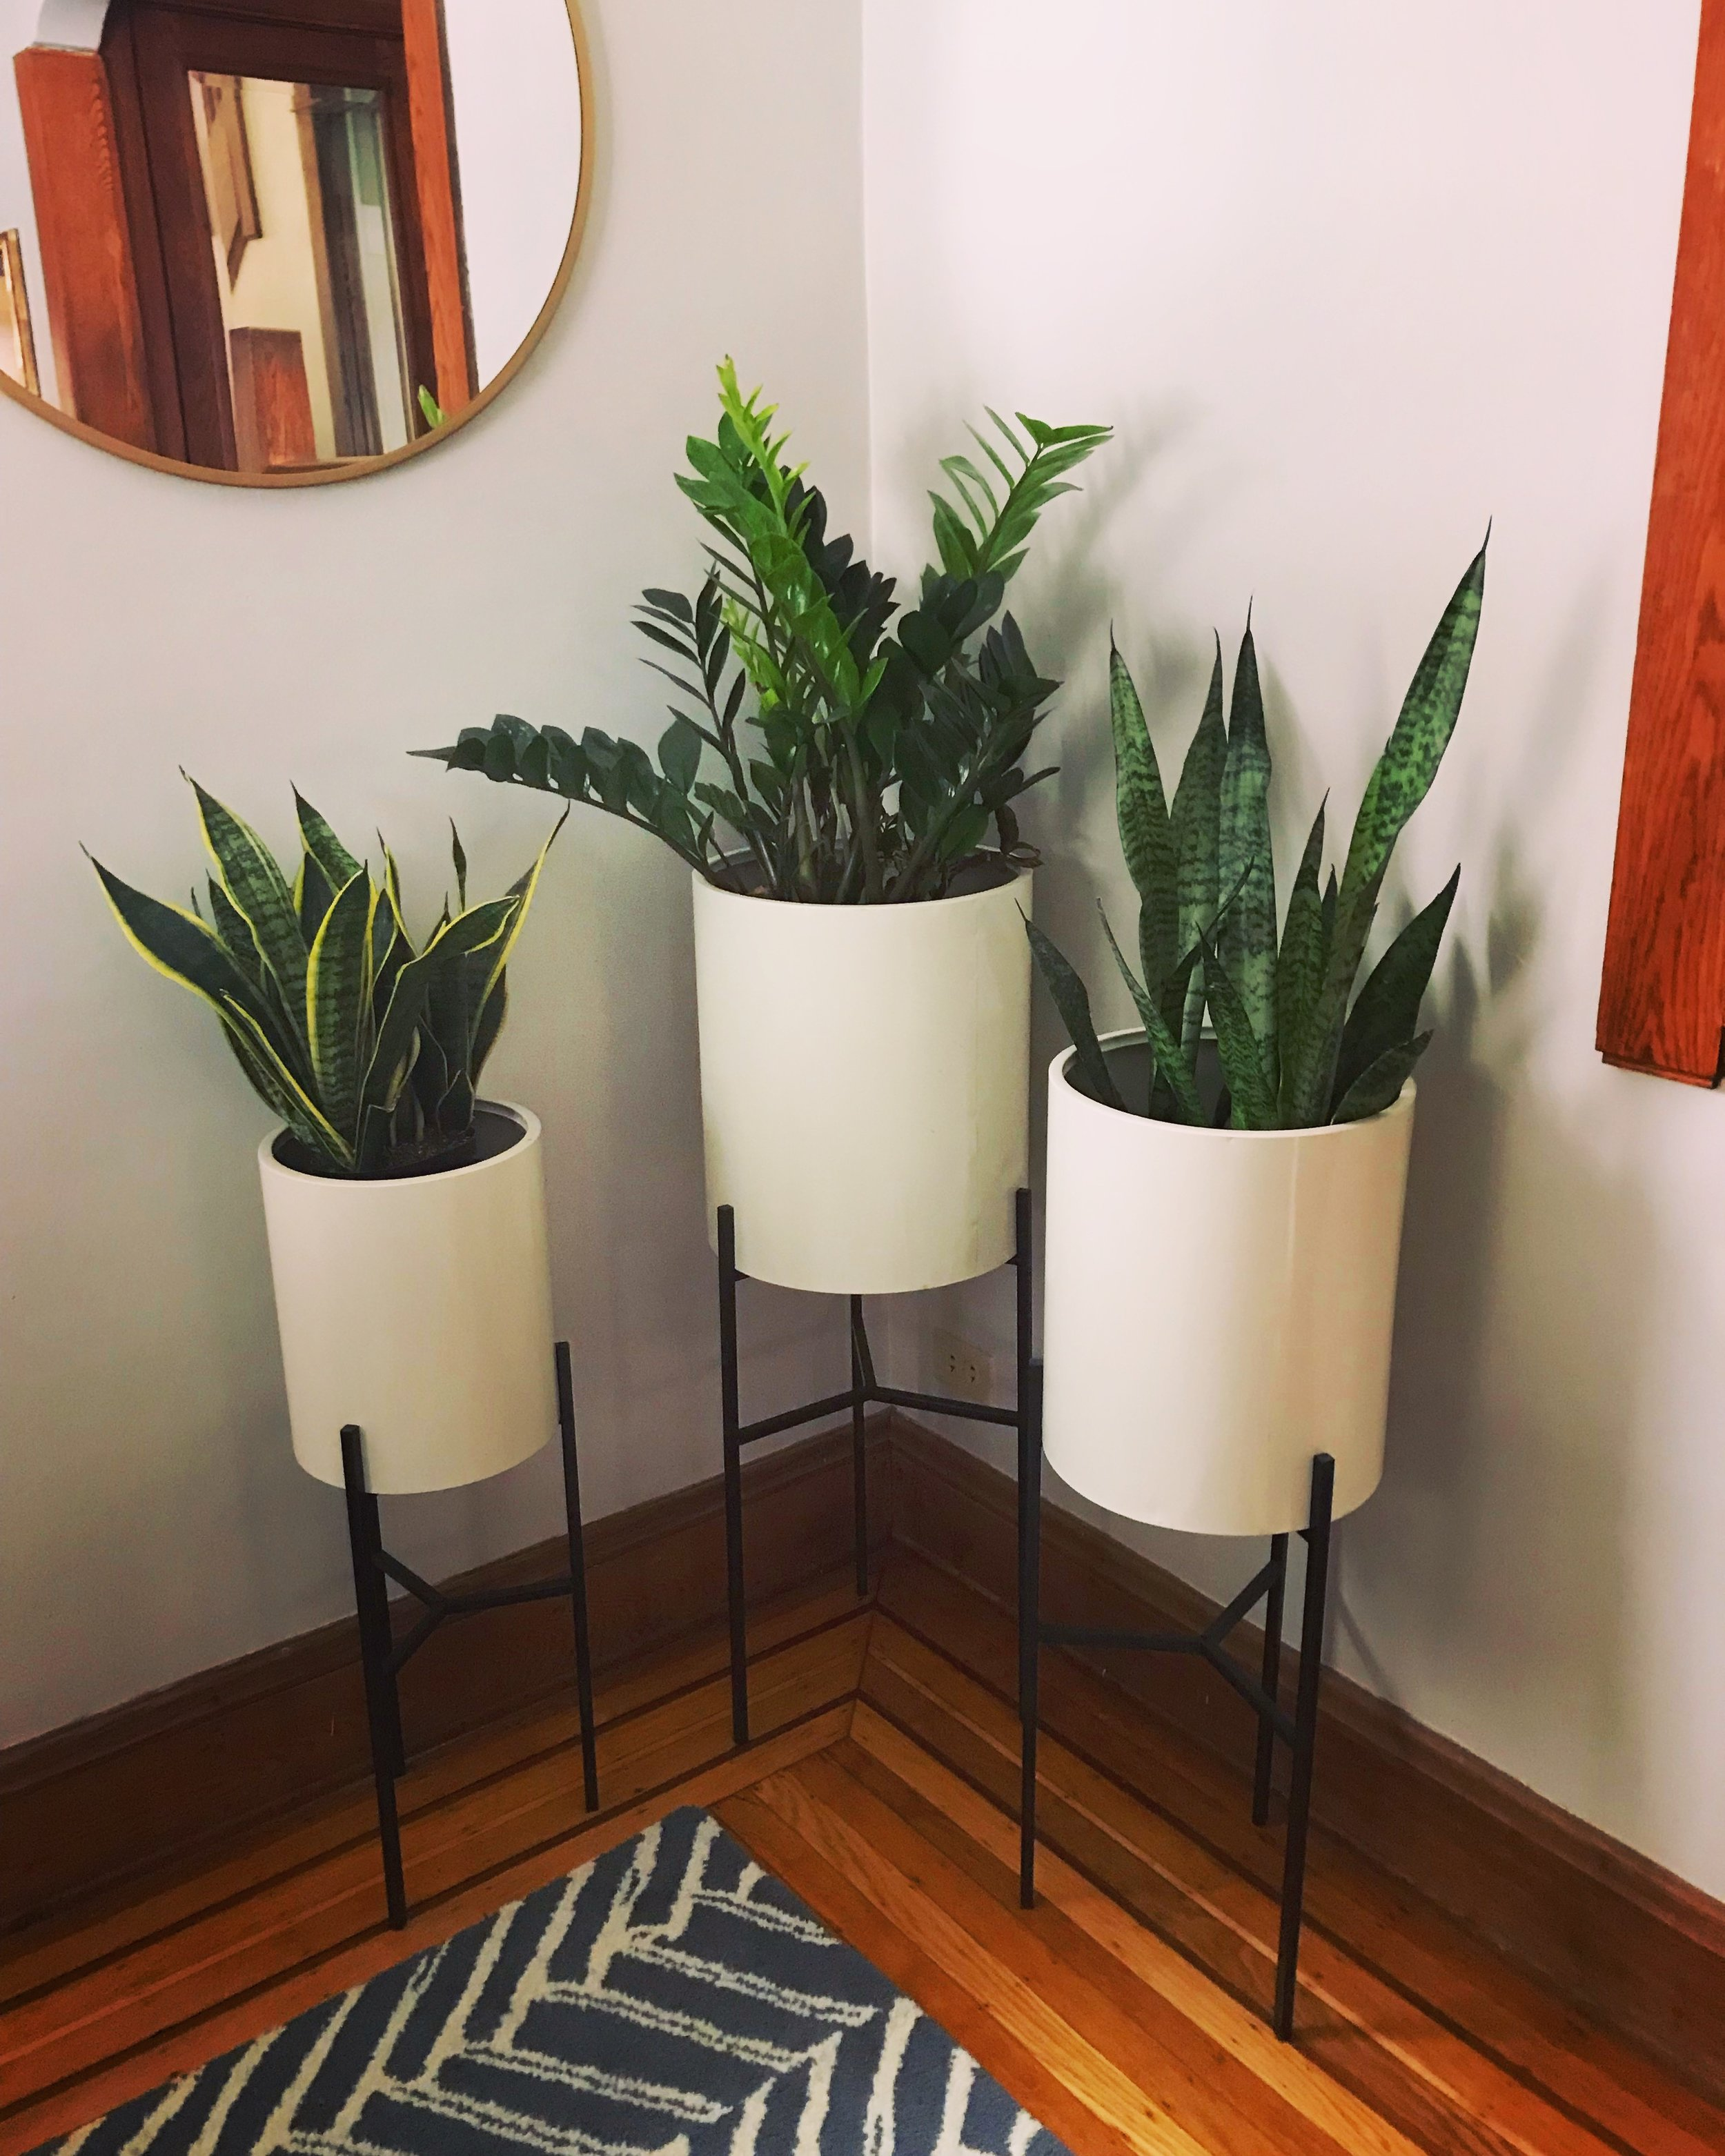 Our low light plant trio. Snake plants (aka Mother in Laws Tongue) on each side and a ZZ plant in the middle.